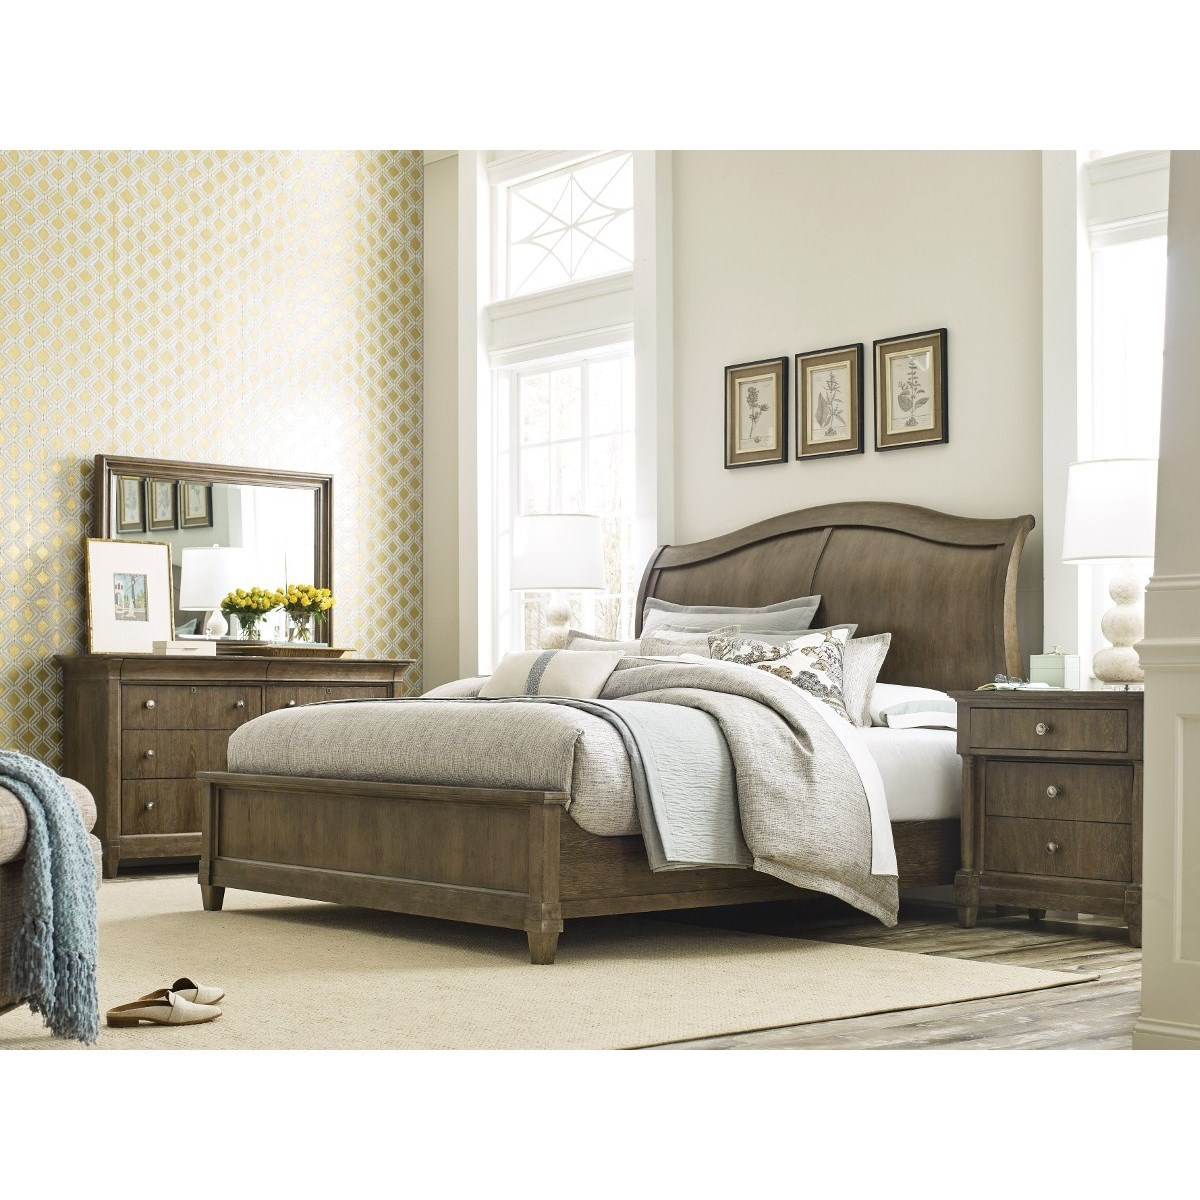 Anson King Bedroom Group by American Drew at Alison Craig Home Furnishings